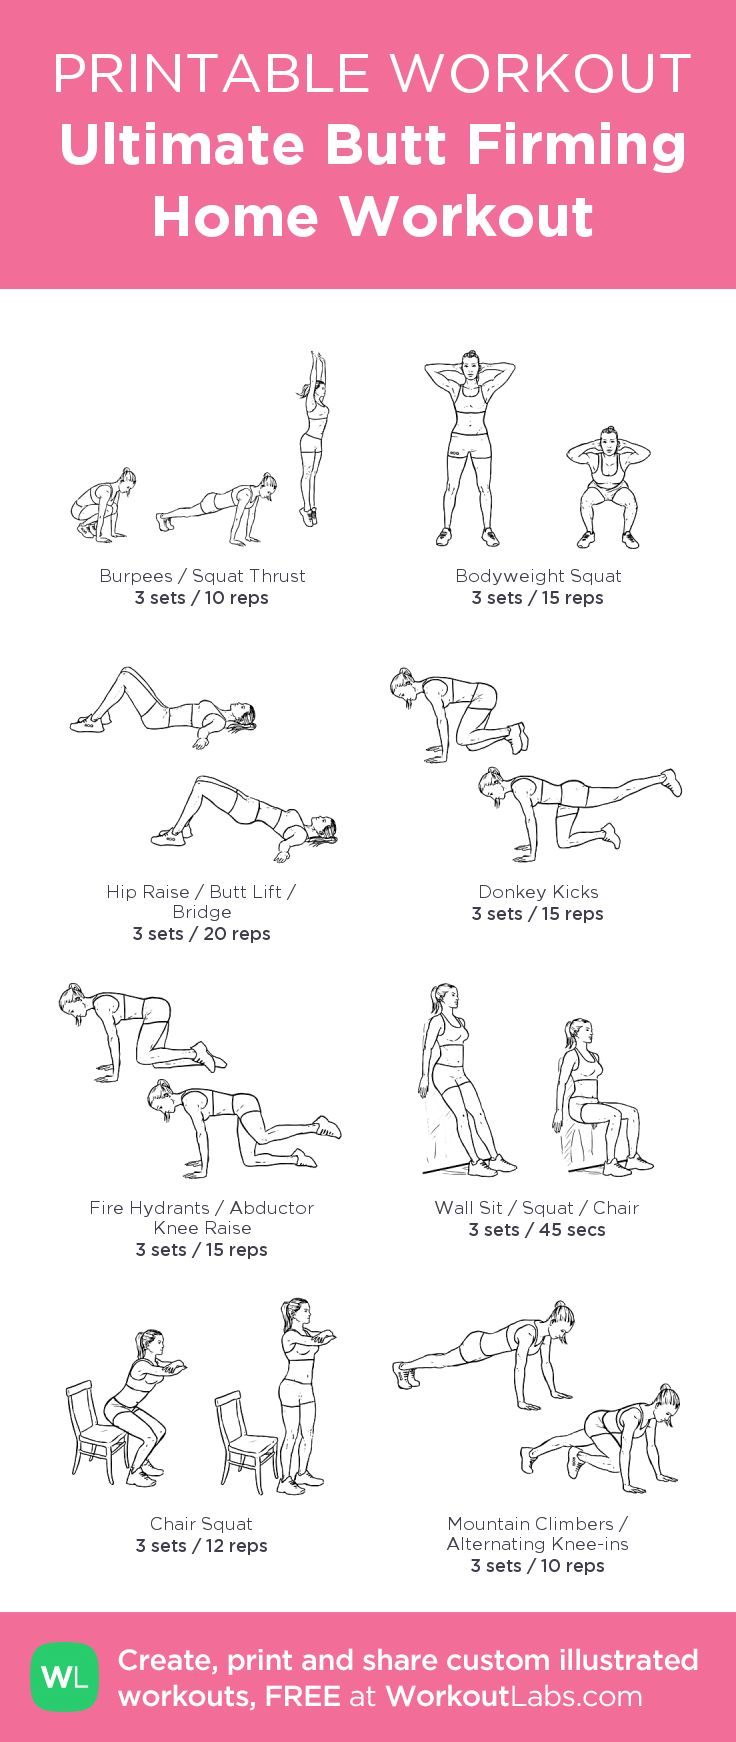 Ultimate Butt Firming Home Printable Illustrated Workout – Visit http://WorkoutLabs.com/custom-workout-builder/?tl1=Ultimate%20Butt%20Firming%20Home%20Workouta1=1954b1=3c1=10a2=1293b2=3c2=15a3=1245b3=3c3=20a4=2572b4=3c4=15a5=2577b5=3c5=15a6=2681b6=3c6=45stl2=Name%20your%20workouta7=3571b7=3c7=12a8=1970b8=3c8=10tms=1403469623392 to download as printable PDF! #customworkout